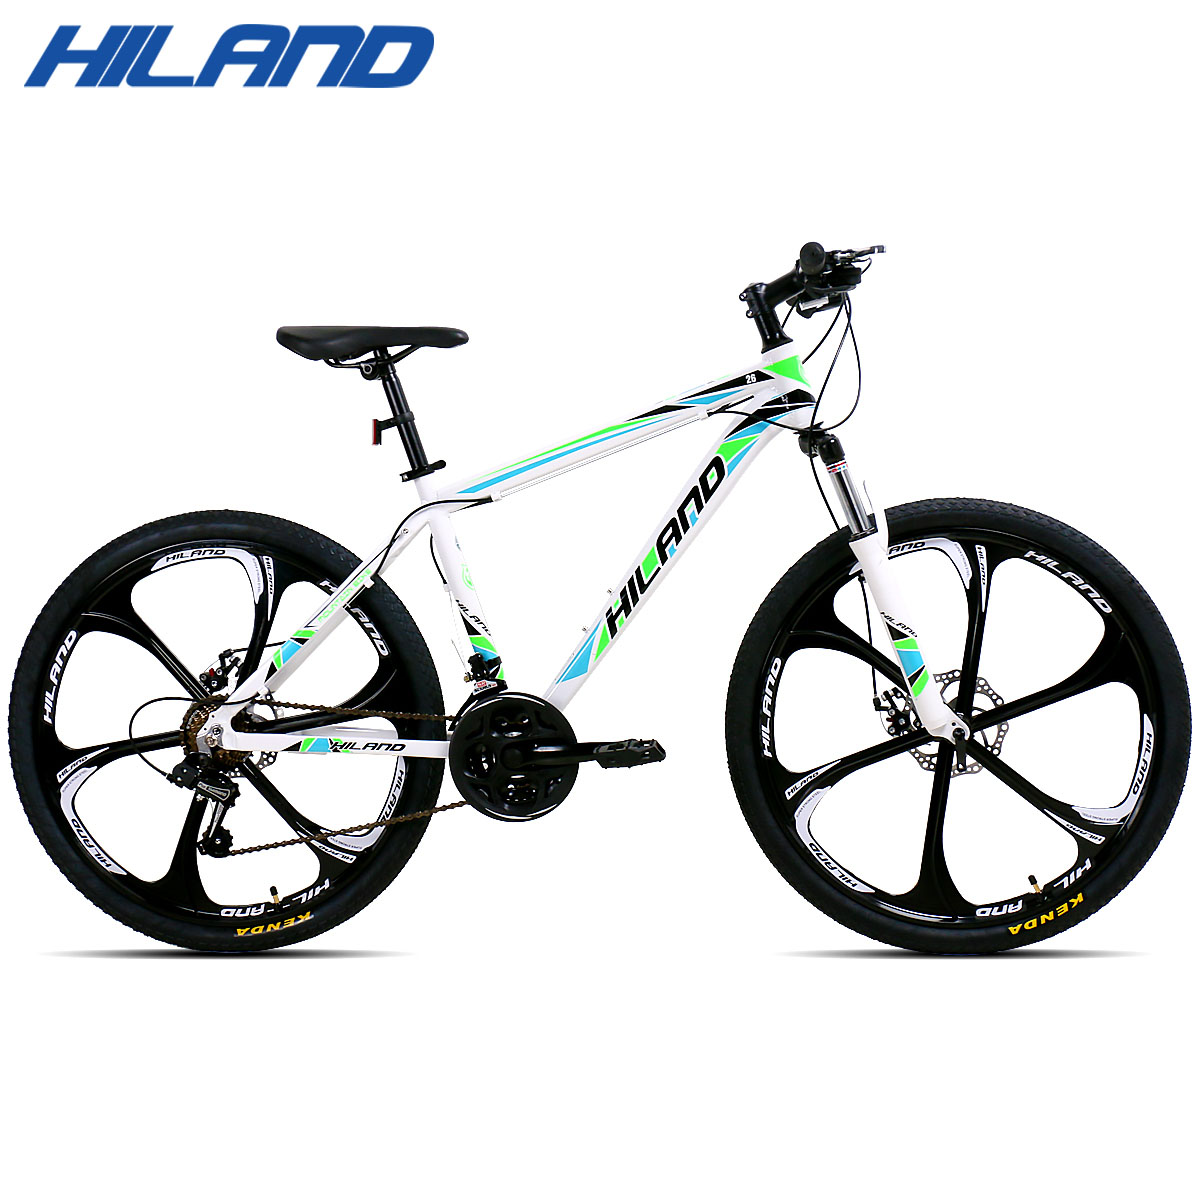 HILAND 26 Mountain Bike 21/27 Speed Aluminum Bicycle Double Disc Brake MTB Suspension Fork with Shimano TZ50